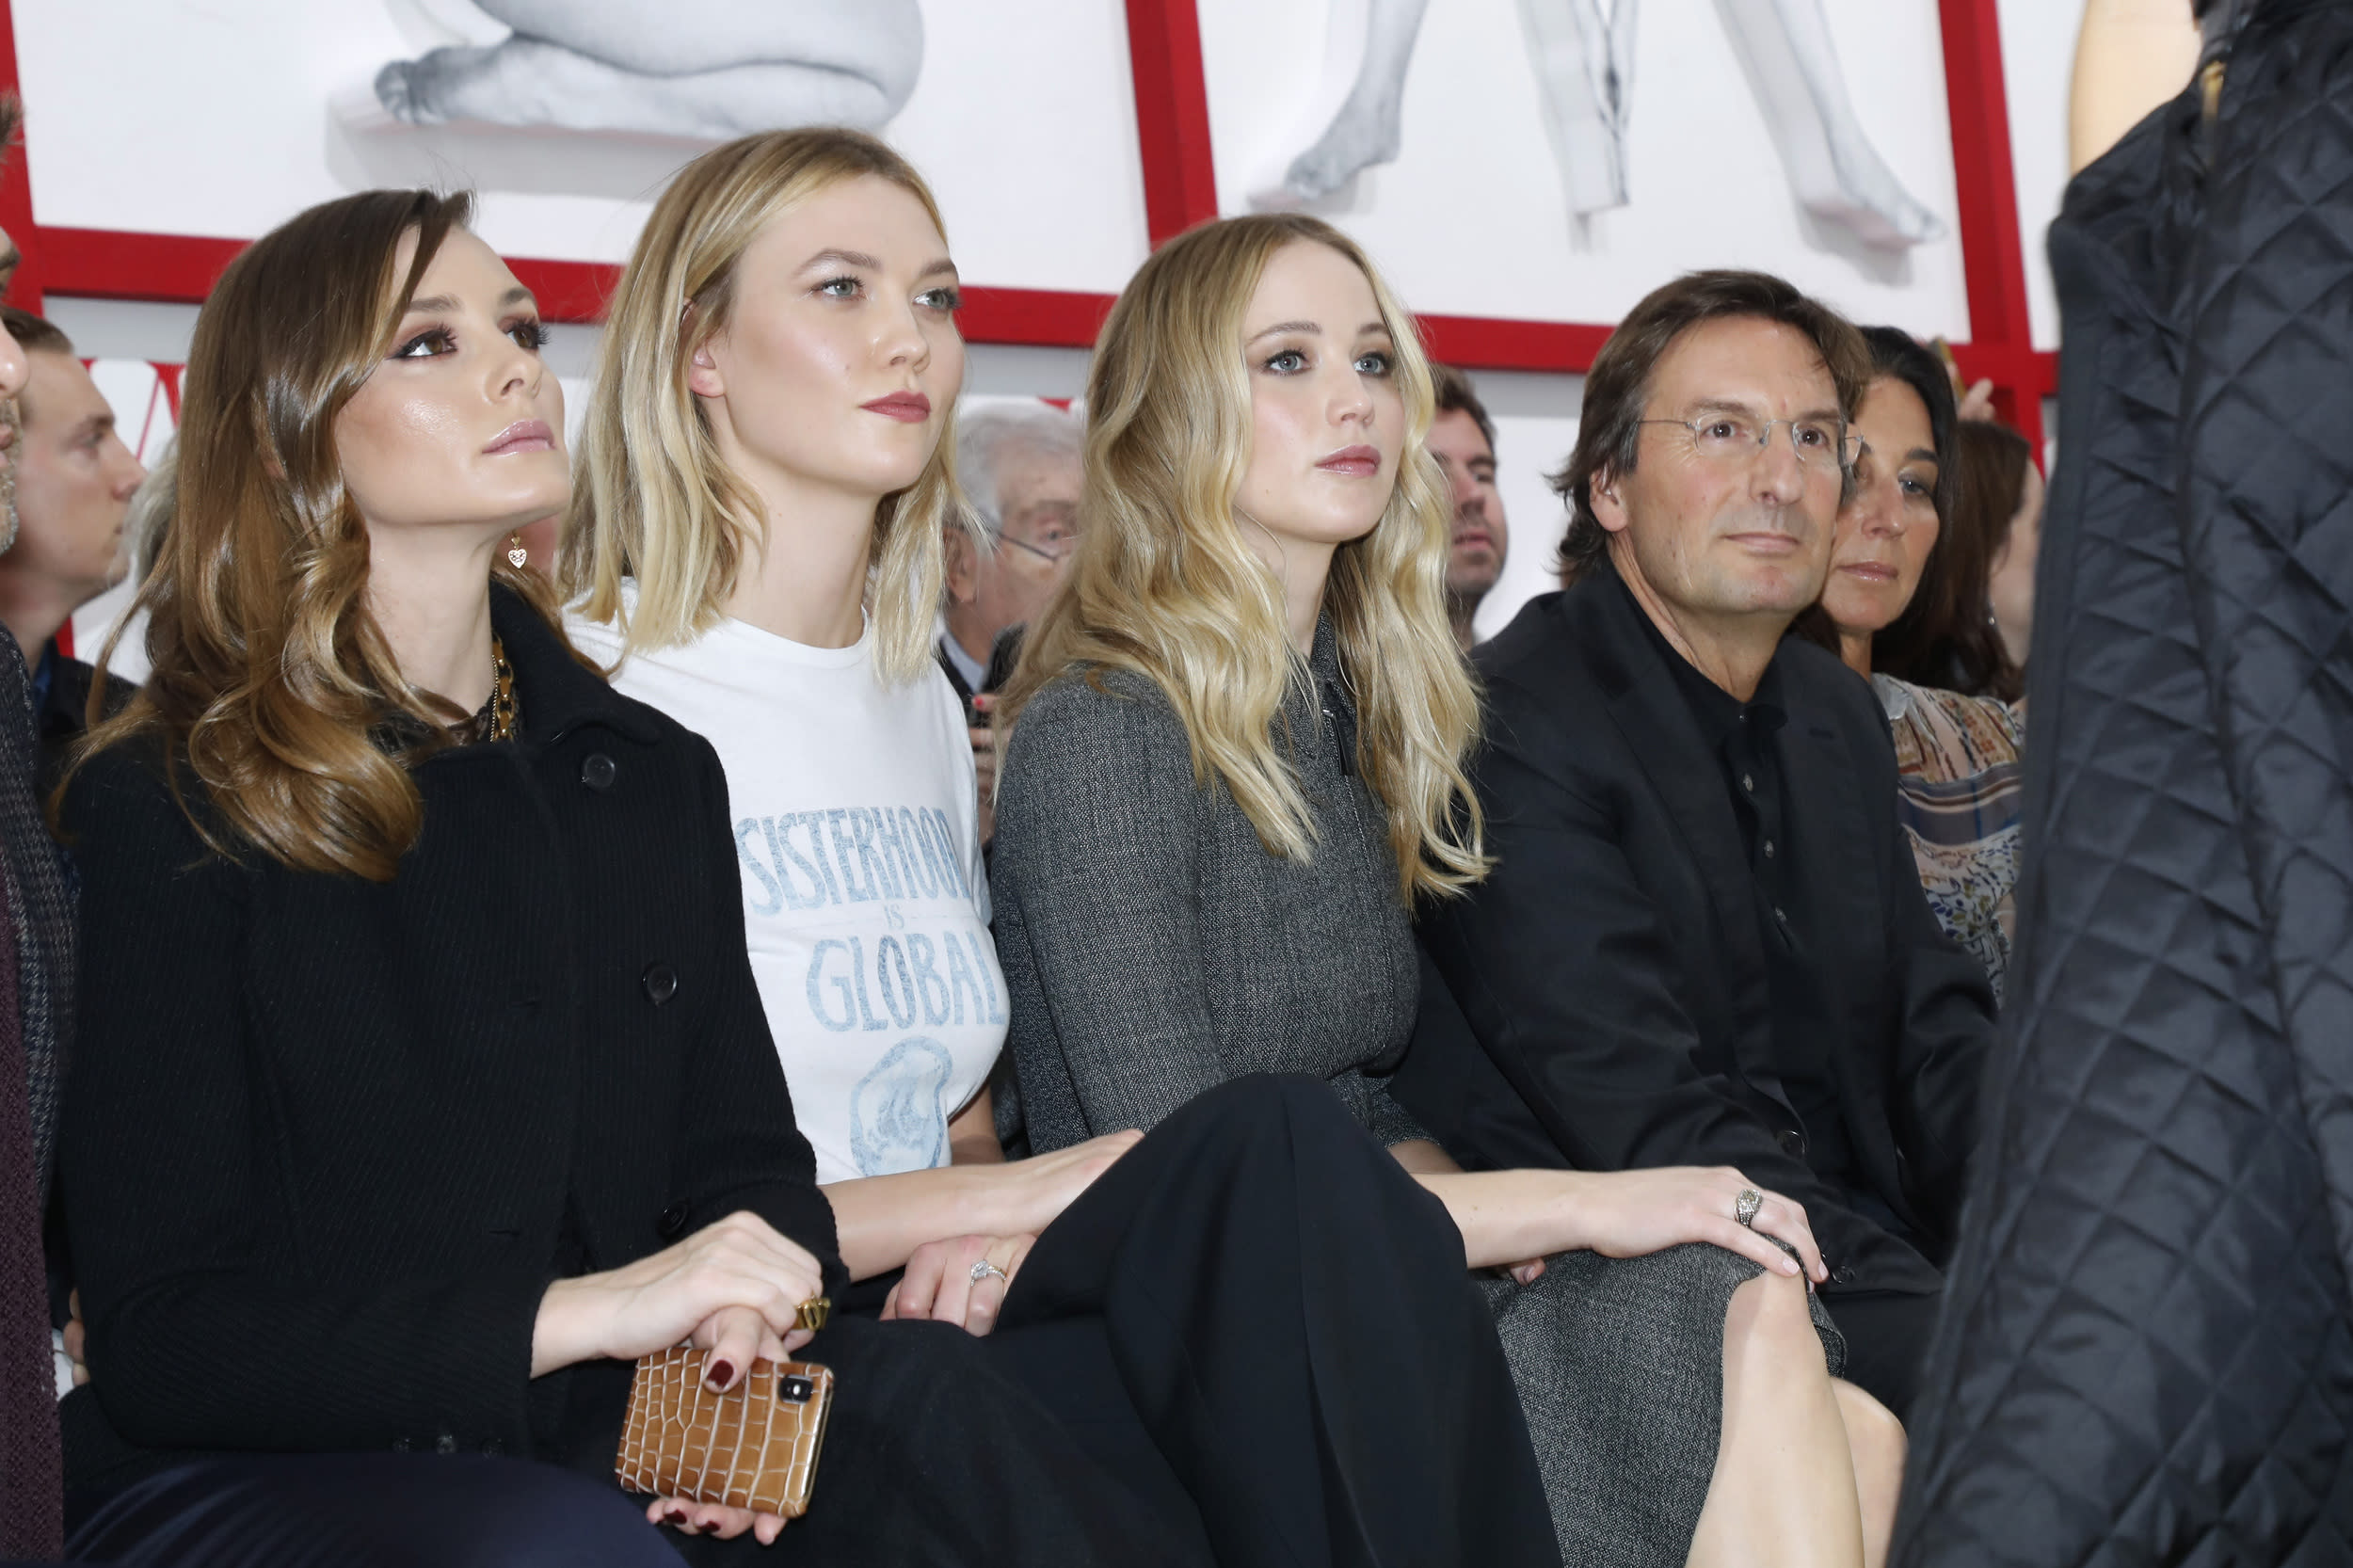 PARIS, FRANCE - FEBRUARY 26: (L-R) Olivia Palermo, Karlie Kloss, Jennifer Lawrence and CEO of Dior Pietro Beccari attend the Christian Dior show as part of the Paris Fashion Week Womenswear Fall/Winter 2019/2020 on February 26, 2019 in Paris, France. (Photo by Bertrand Rindoff Petroff/Getty Images)